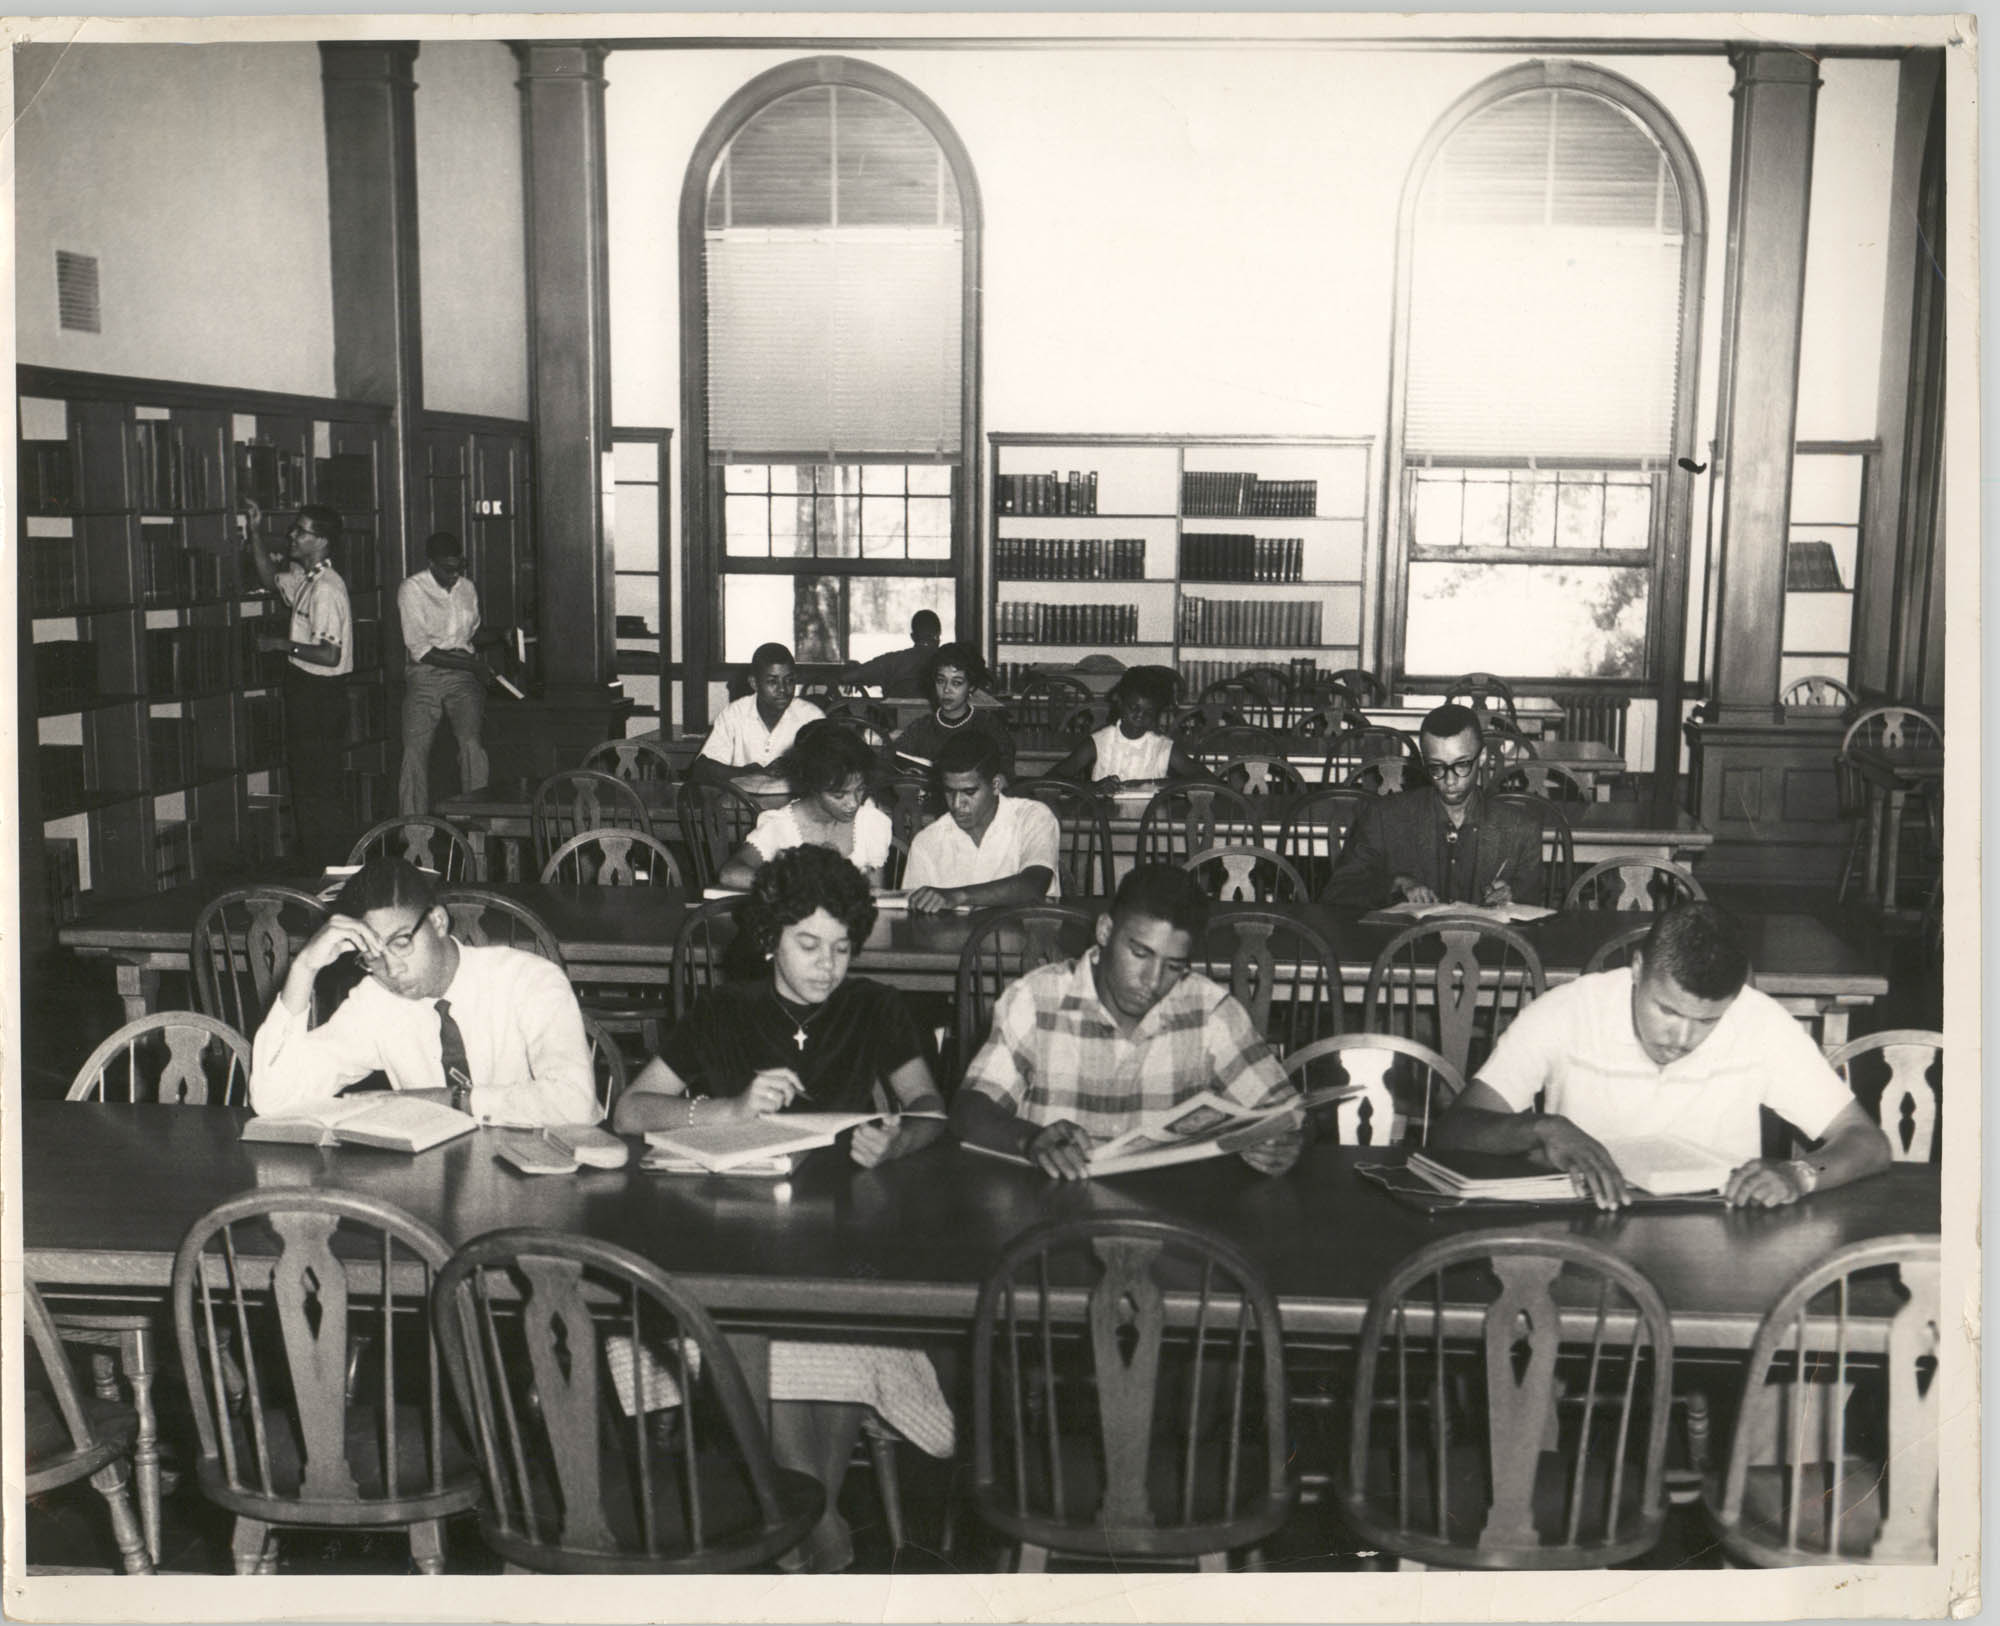 Photograph of Students at Talladega College Library